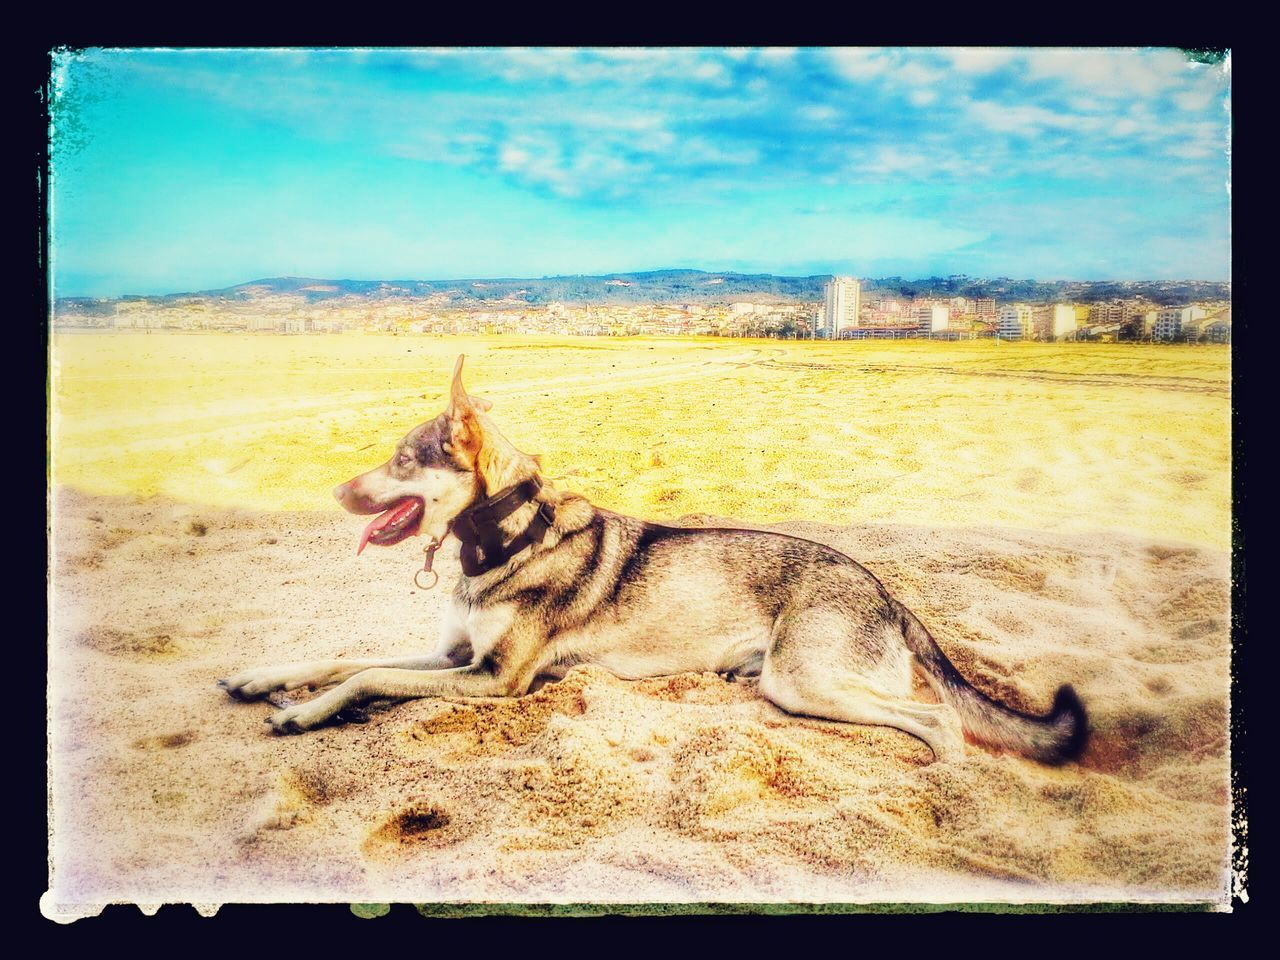 Sand Beach Animal Themes One Animal Domestic Animals Mammal Day Relaxation Sky Outdoors Lying Down Pets Dog No People Nature Sea Water Nature Beachtime Scenics Beauty Cloud - Sky Blue The Street Photographer - 2017 EyeEm Awards Tranquility